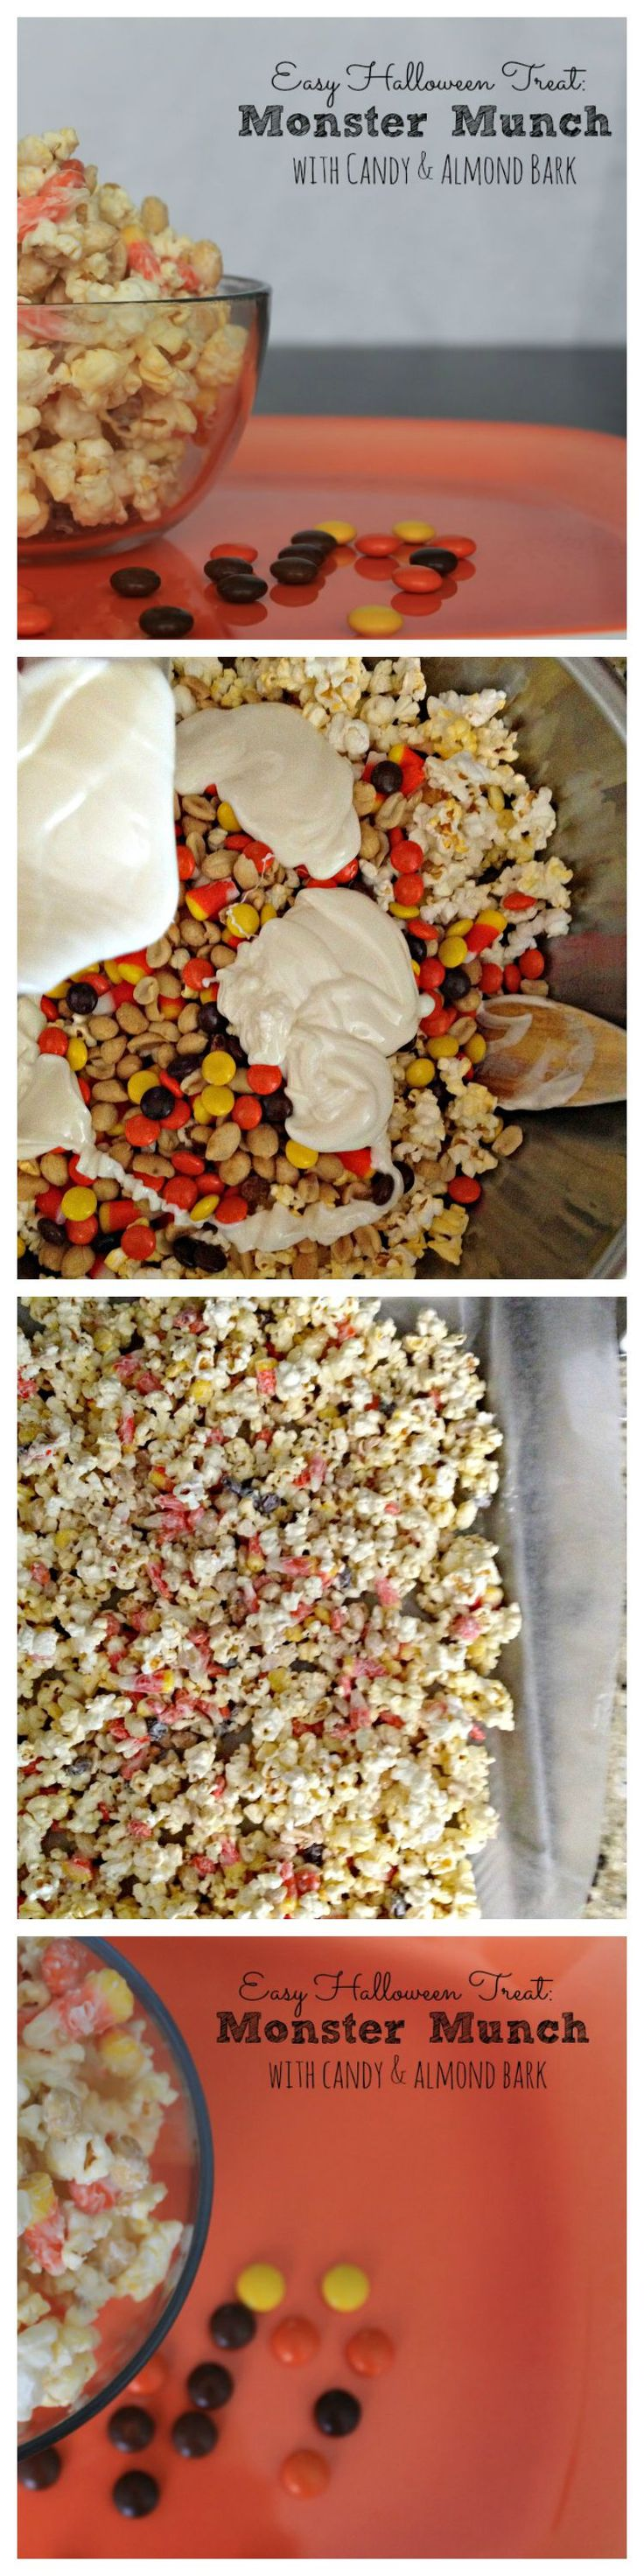 Looking for an easy Halloween treat to whip up for the kids? This Halloween popcorn recipe is a crowd pleaser and slightly addicting.